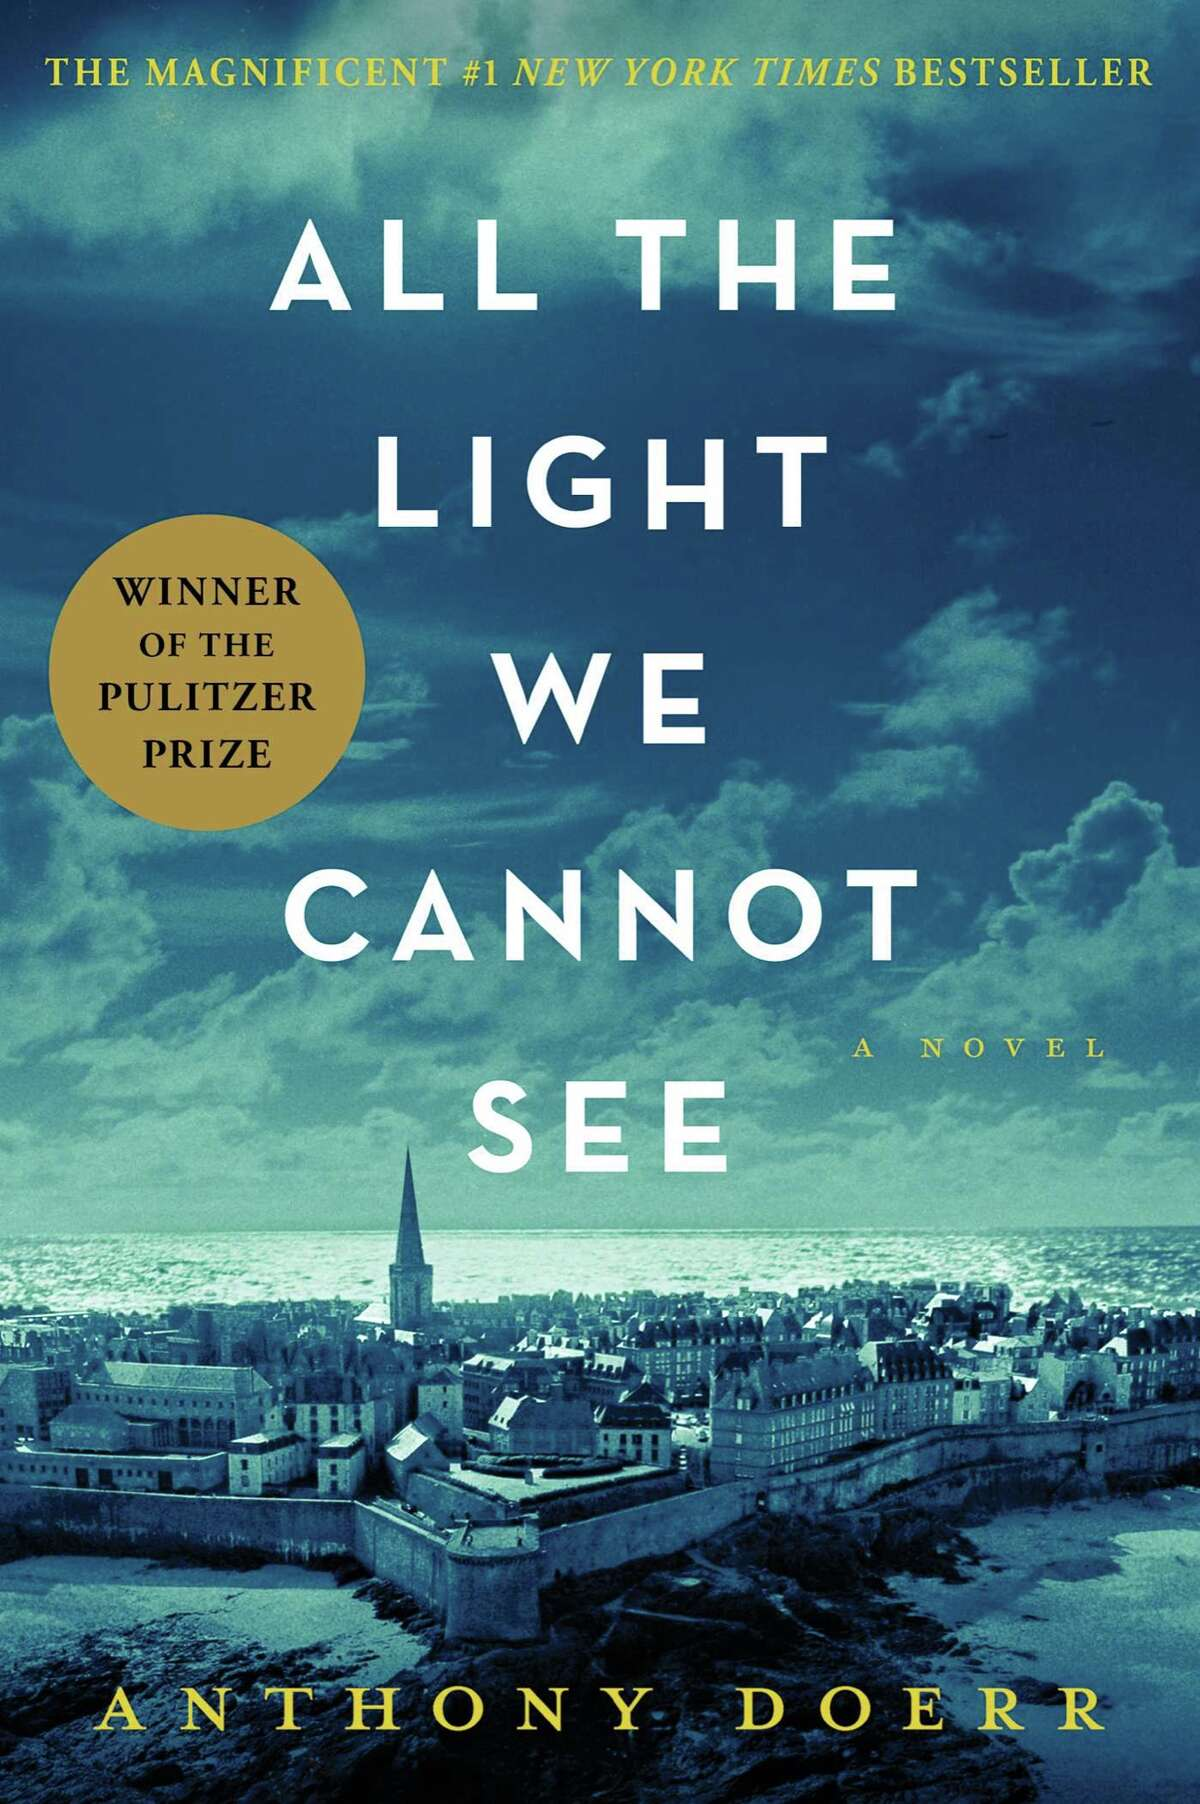 These were the top 15 most popular fiction books at Albany Public Library in 2015: 1) All the Light We Cannot See by Anthony Doerr